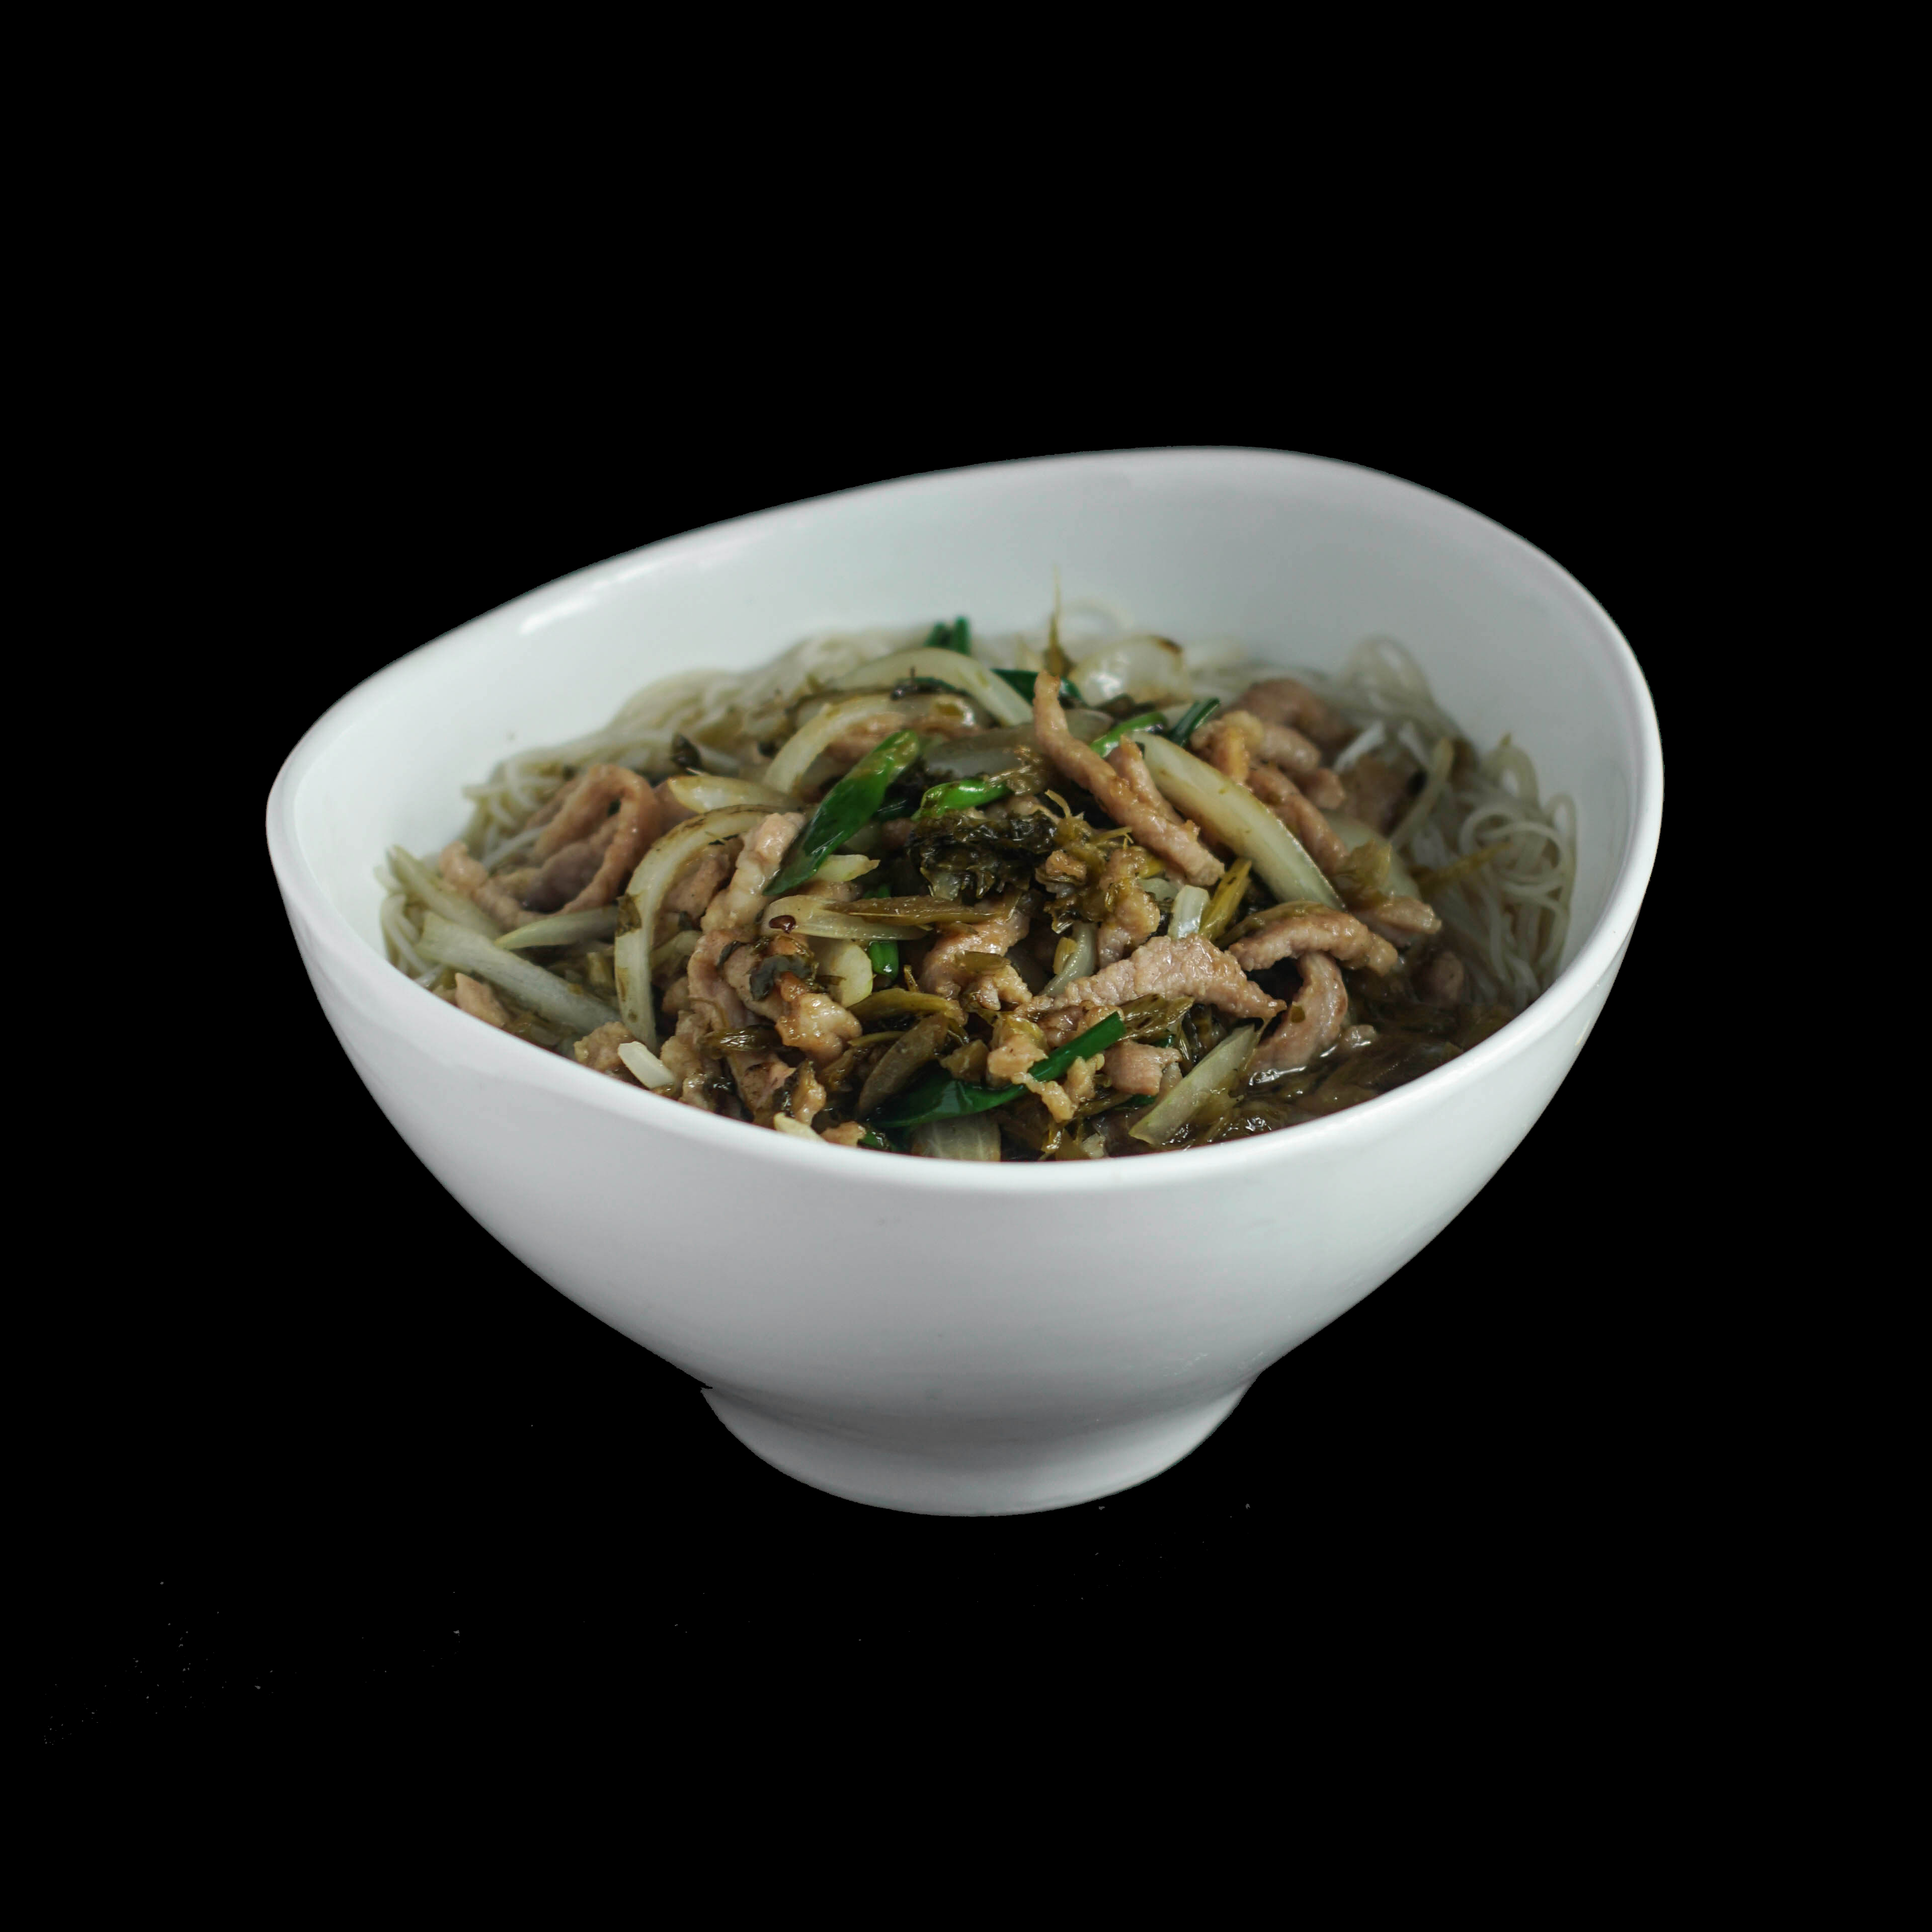 110. 雪菜肉丝 Shredded Pork w/ Preserved Vegetable Noodle Soup Image